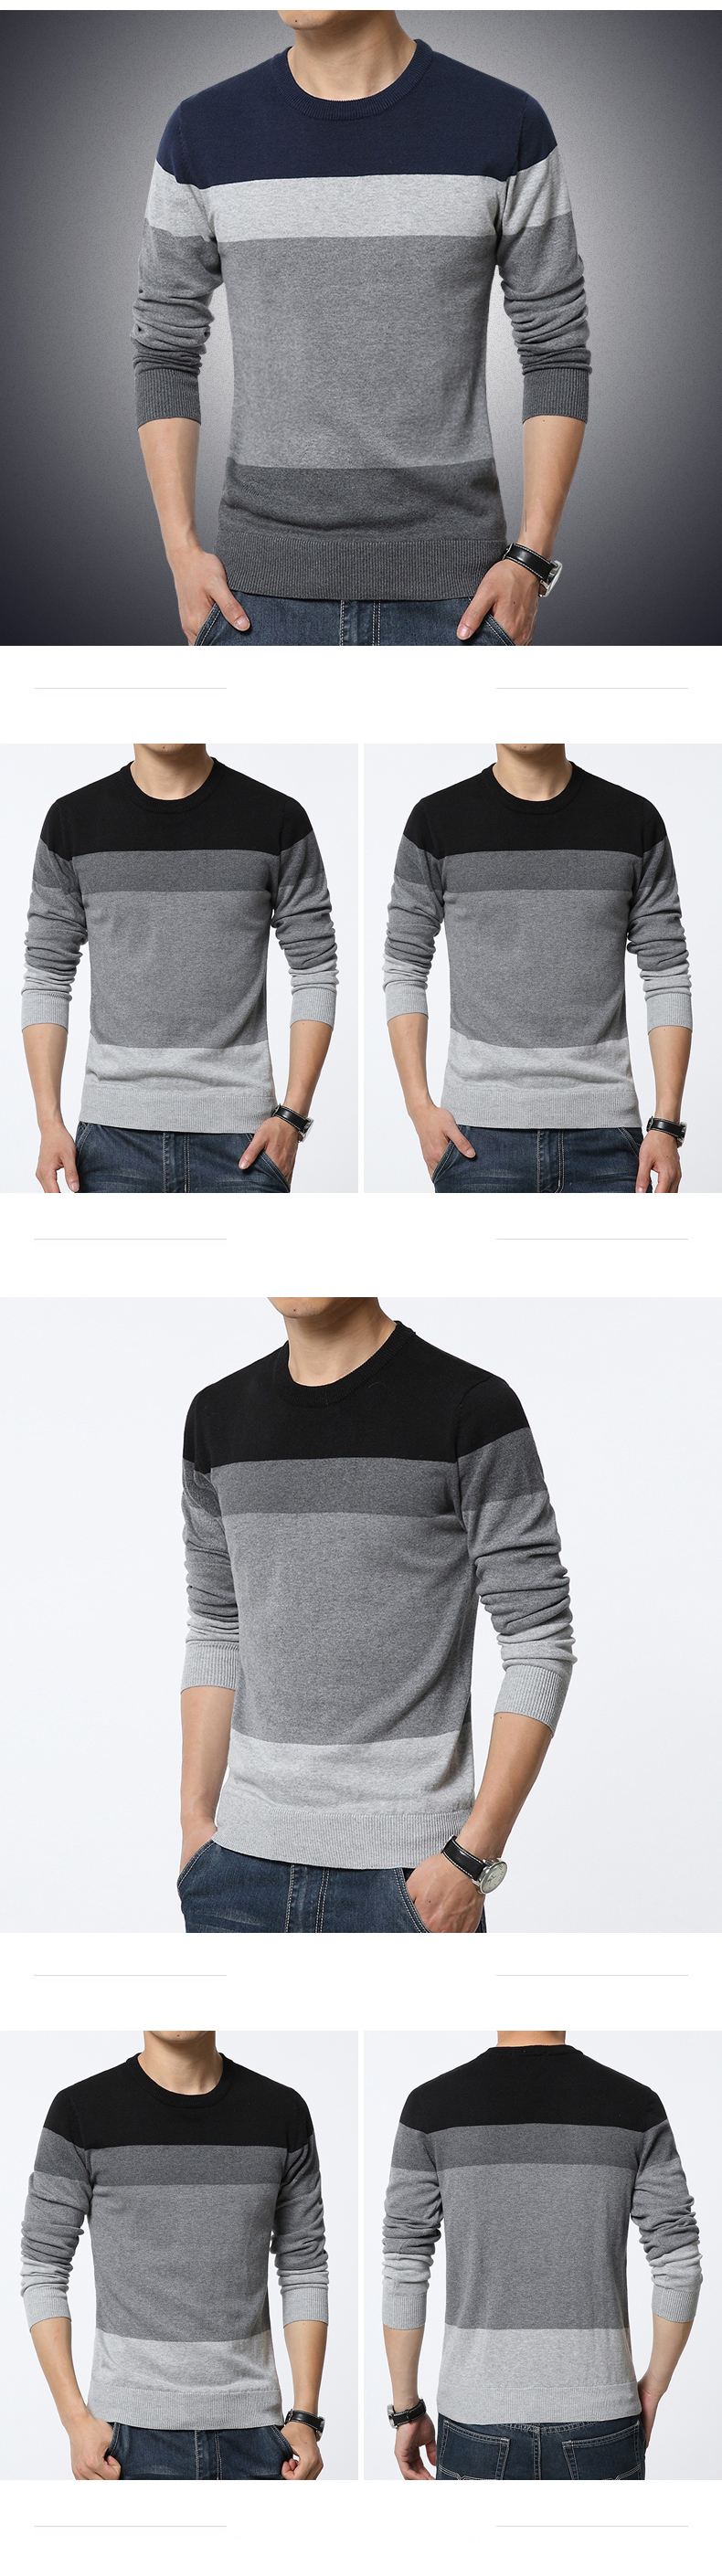 19 Autumn Casual Men's Sweater O-Neck Striped Slim Fit Knittwear Mens Sweaters Pullovers Pullover Men Pull Homme M-3XL 5